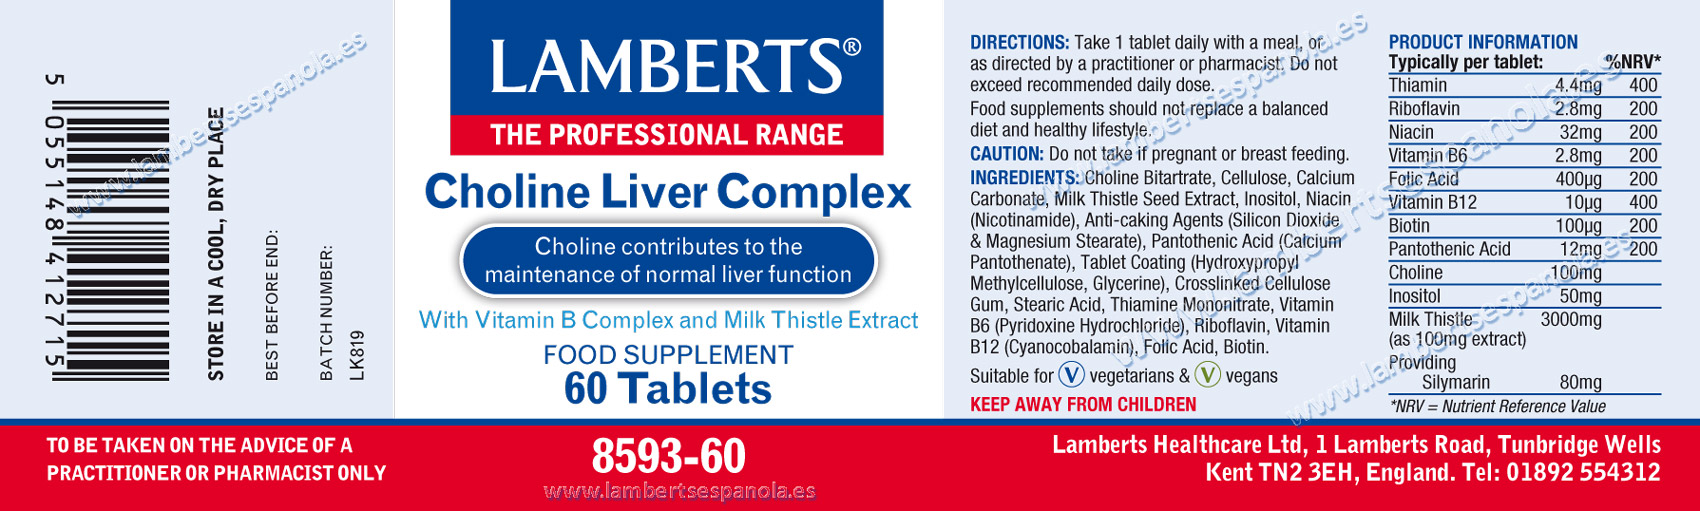 lamberts Choline LIver Complex label with it properties